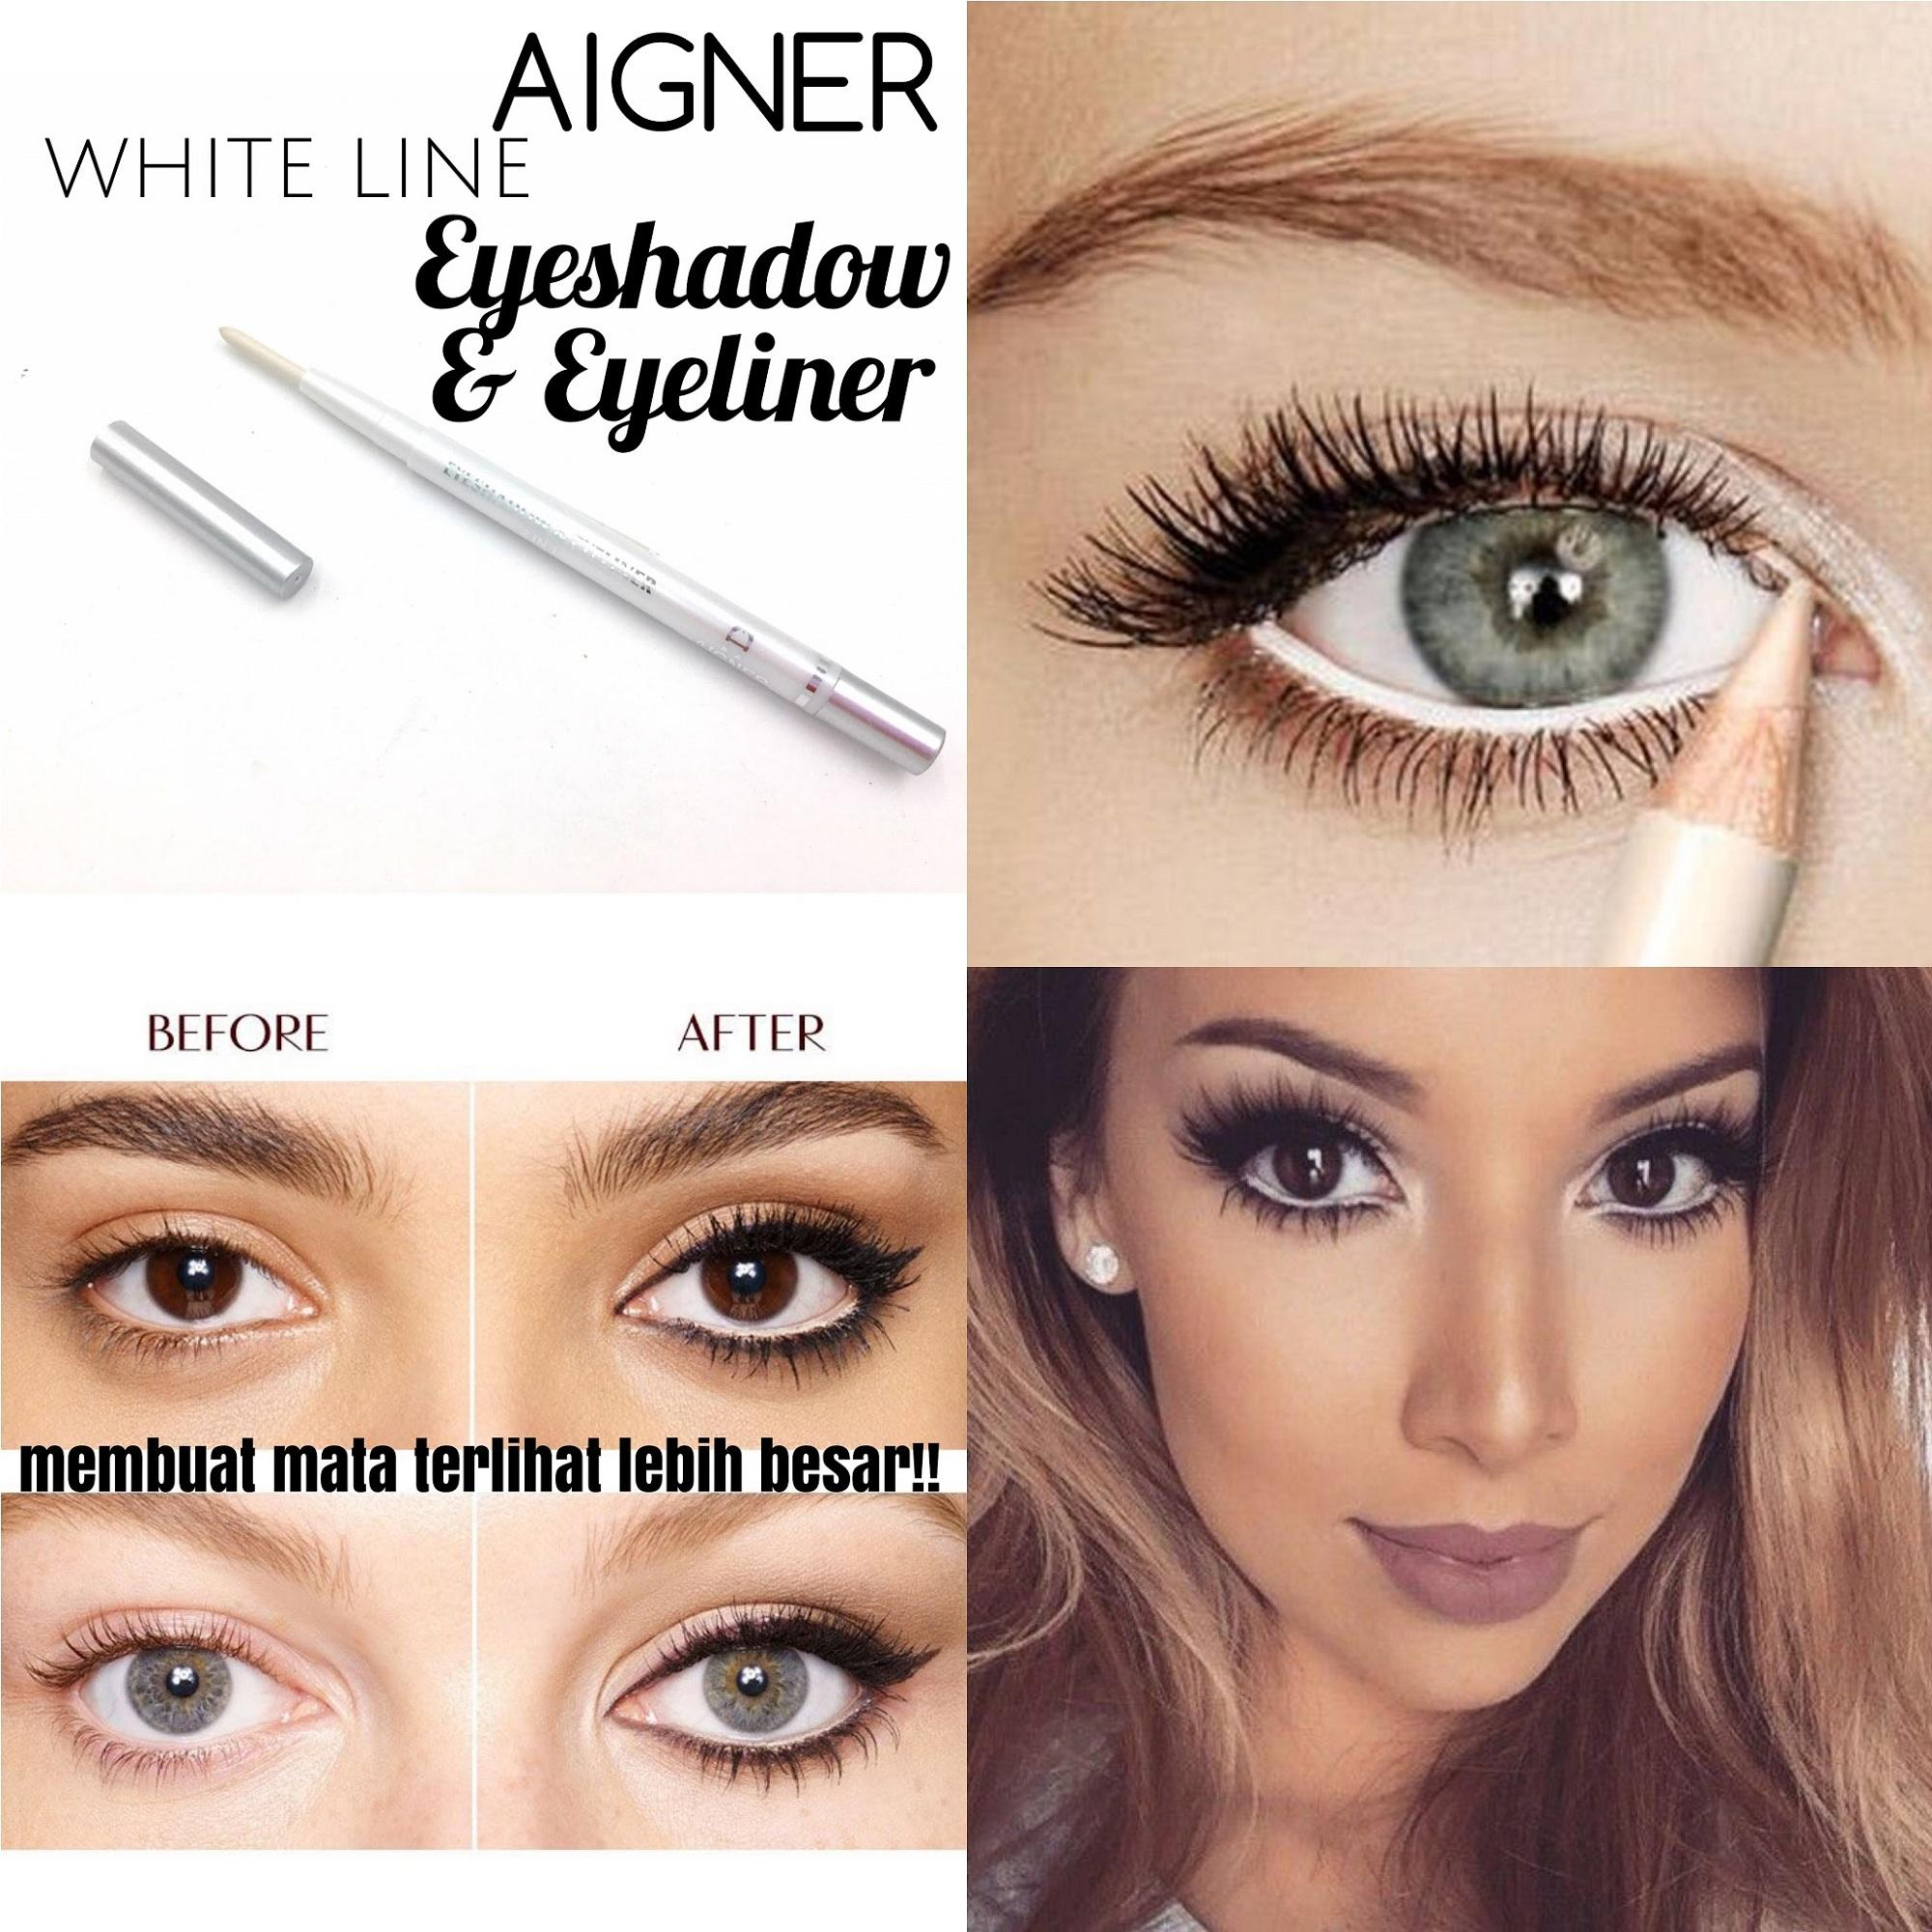 [WHITE] Aigner White Line Eyeshadow & Amp; Eyeliner 2in1 Pencil / Pensil Garis Mata/ Pensil Eyeline